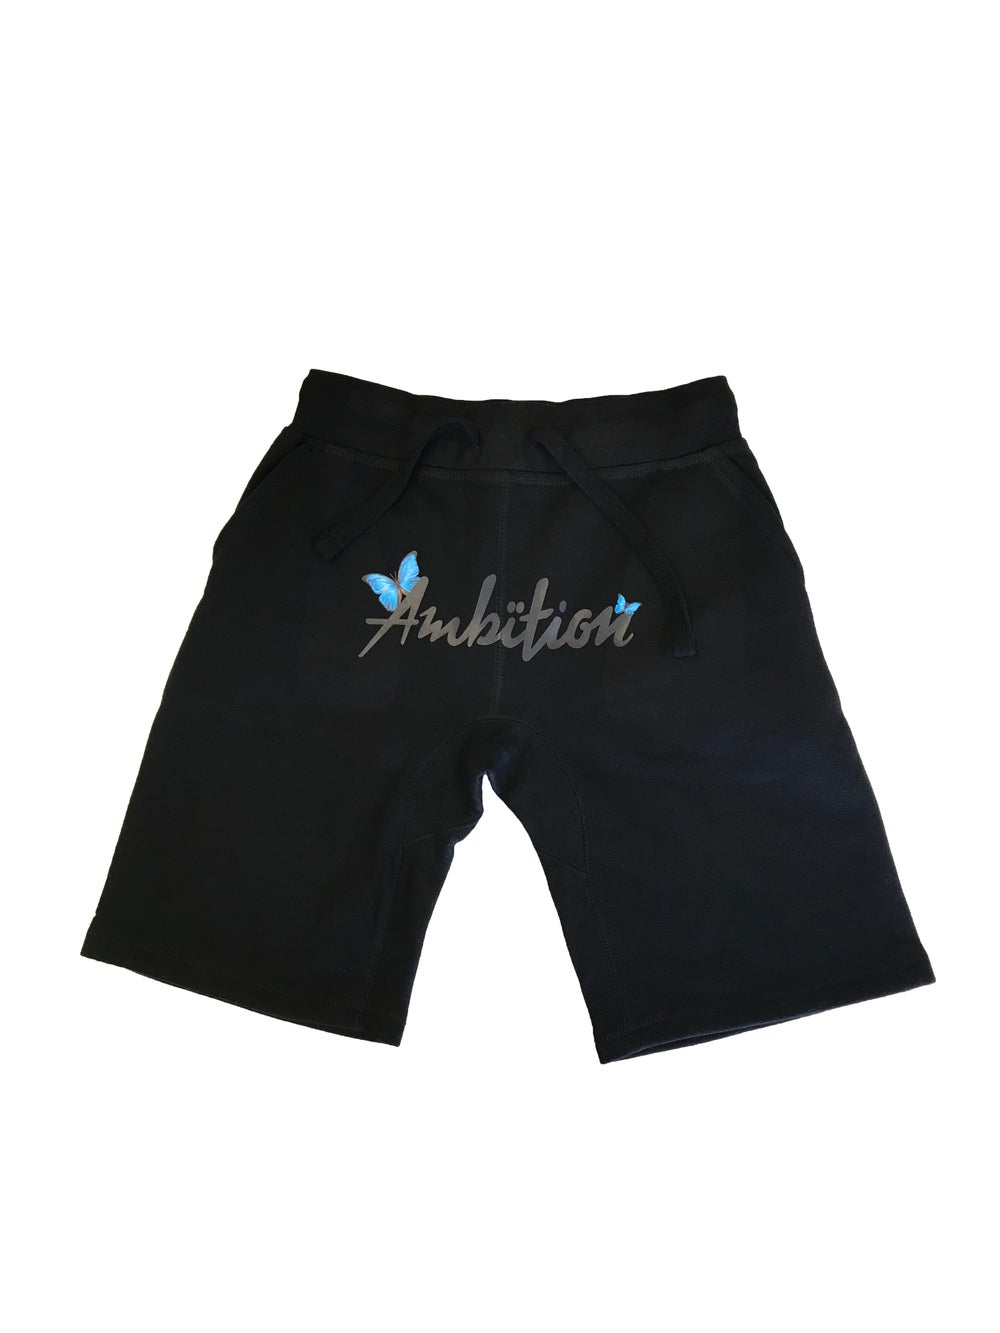 Image of Butterfly shorts (blk)